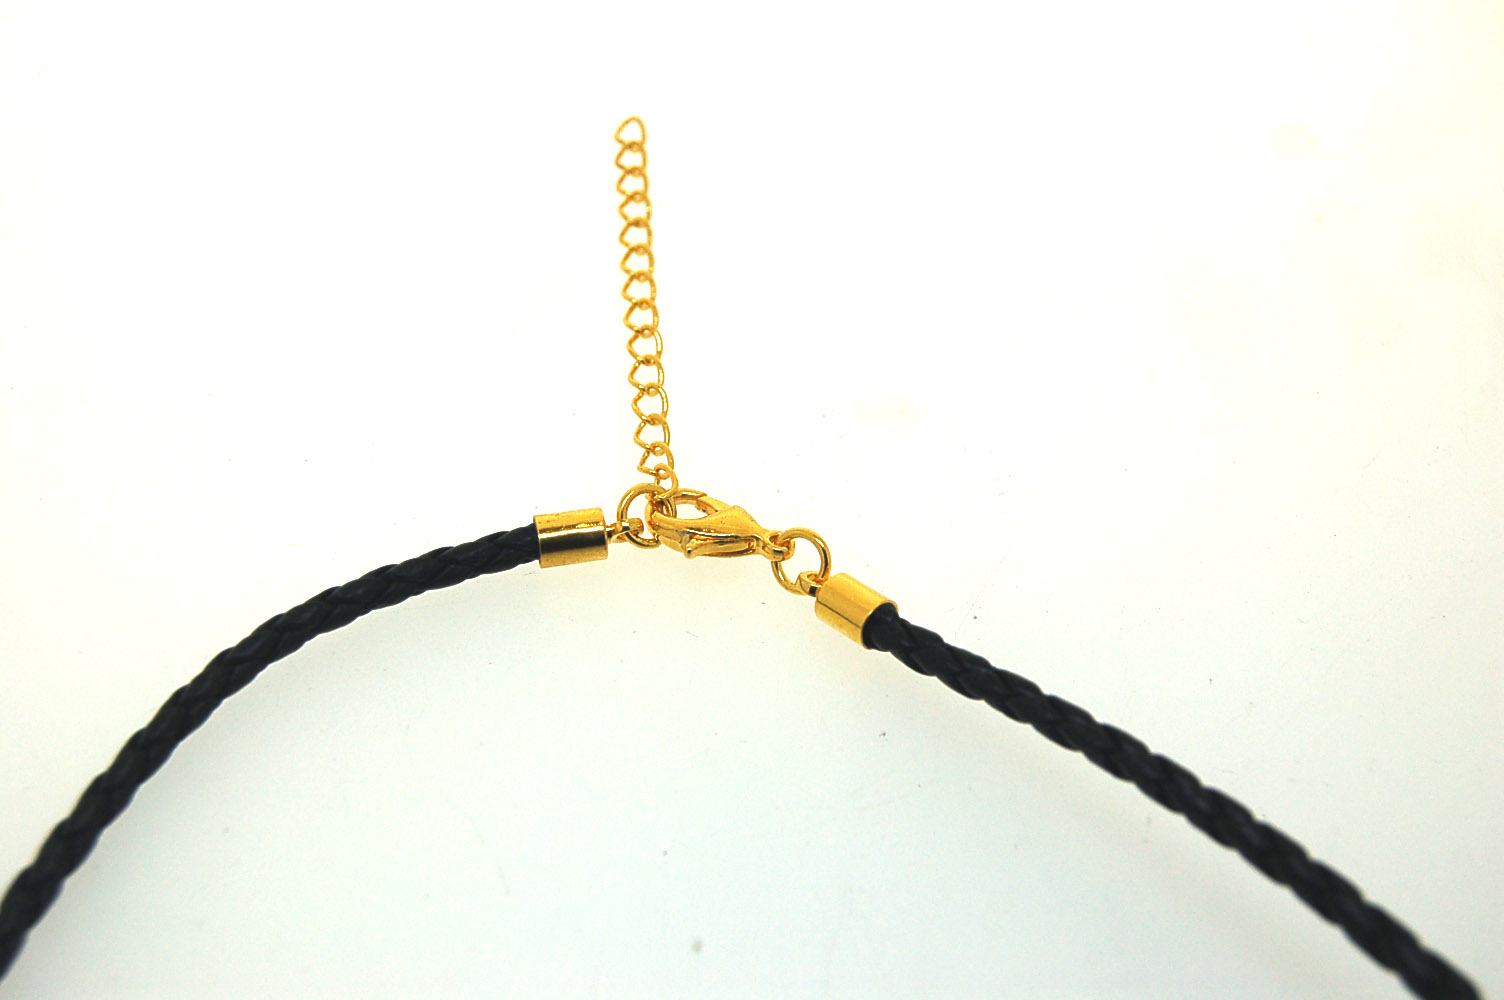 Bolar Leather Chocker 3.0mm with Gold Plate Parrot Clasp